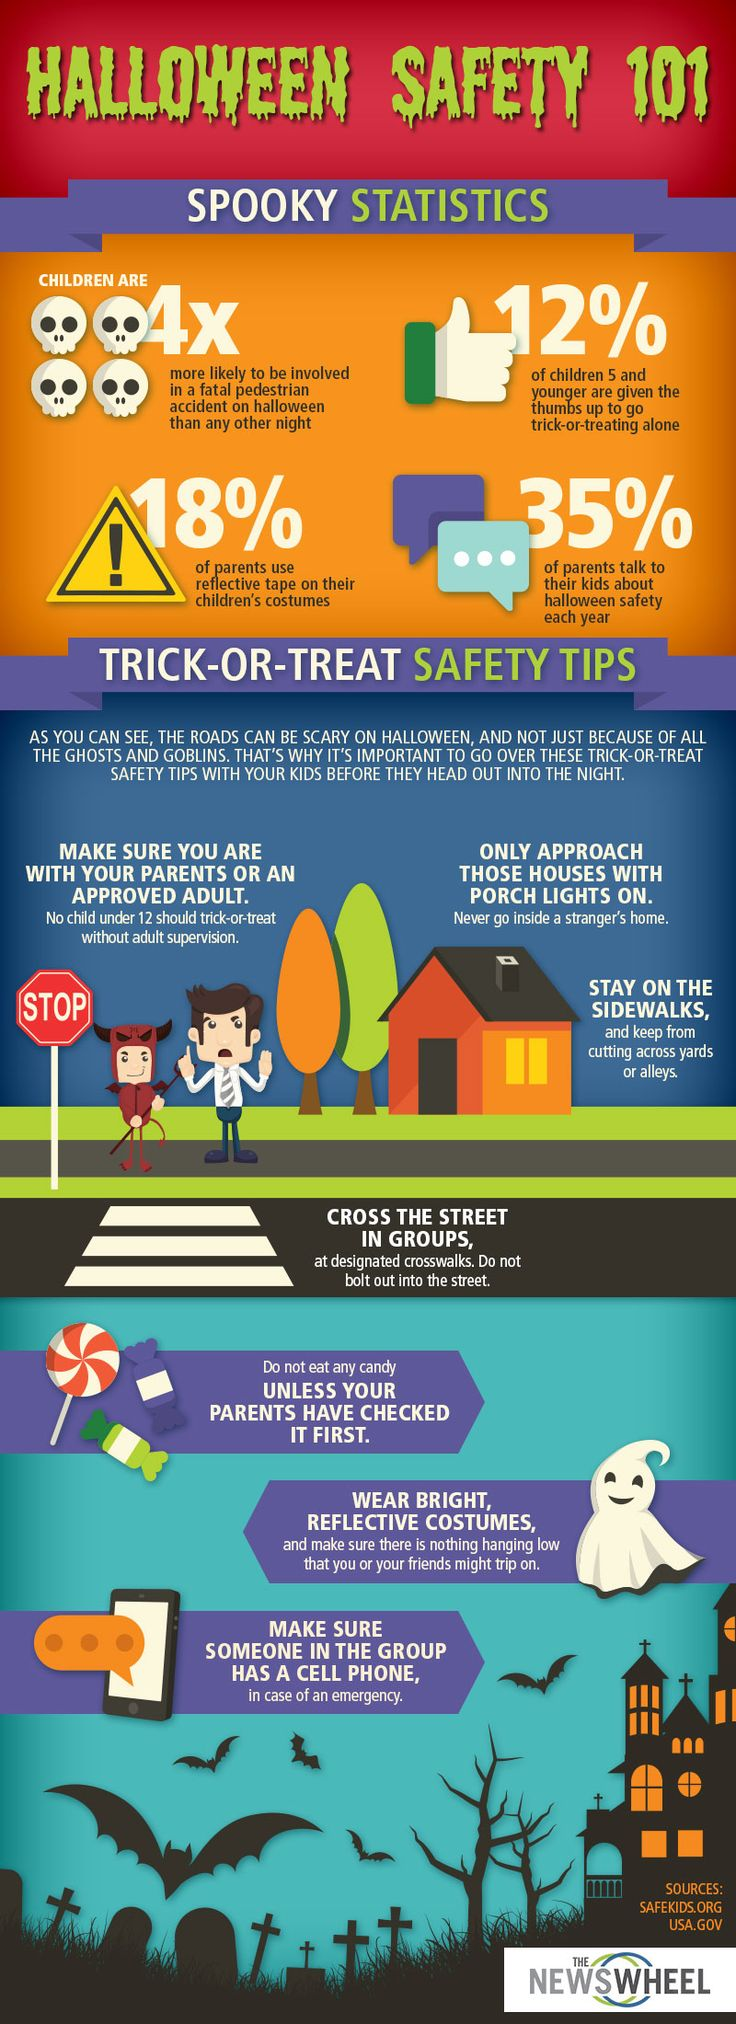 Halloween Safety Tips!